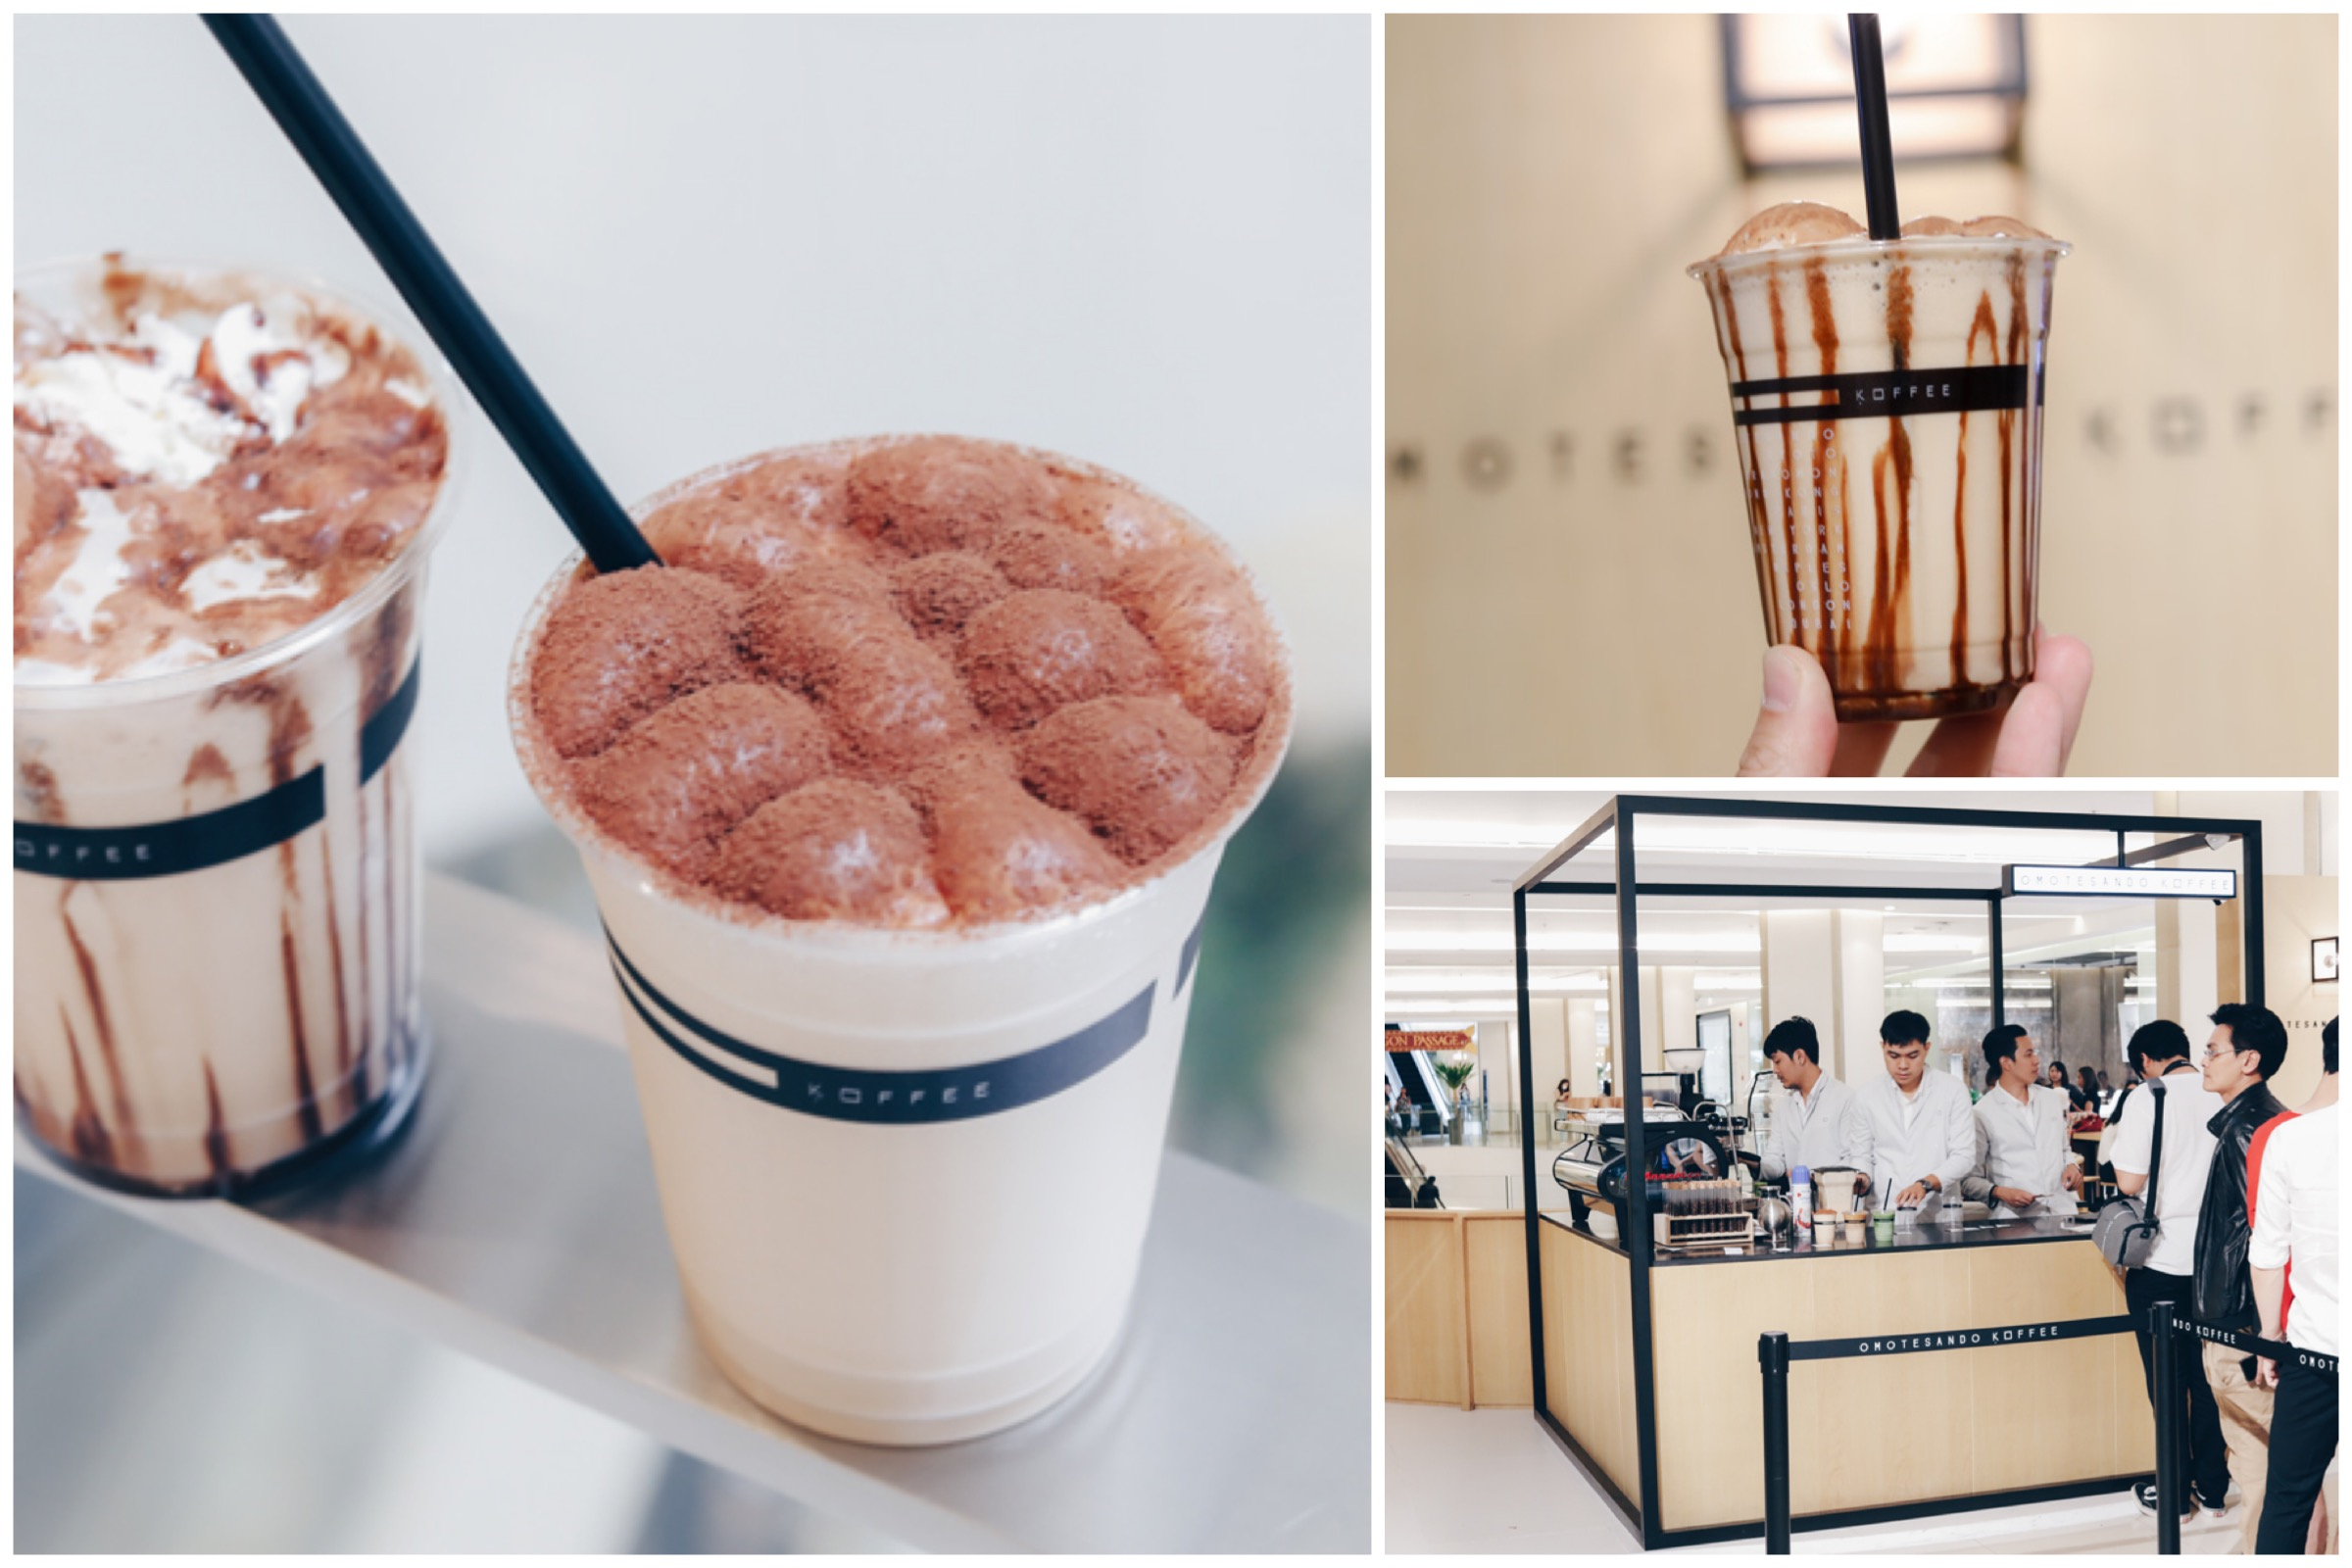 Omotesando Koffee Thailand - Famous Coffee Place Opens In Bangkok At Siam Paragon, Known For Its Iced Cappuccino